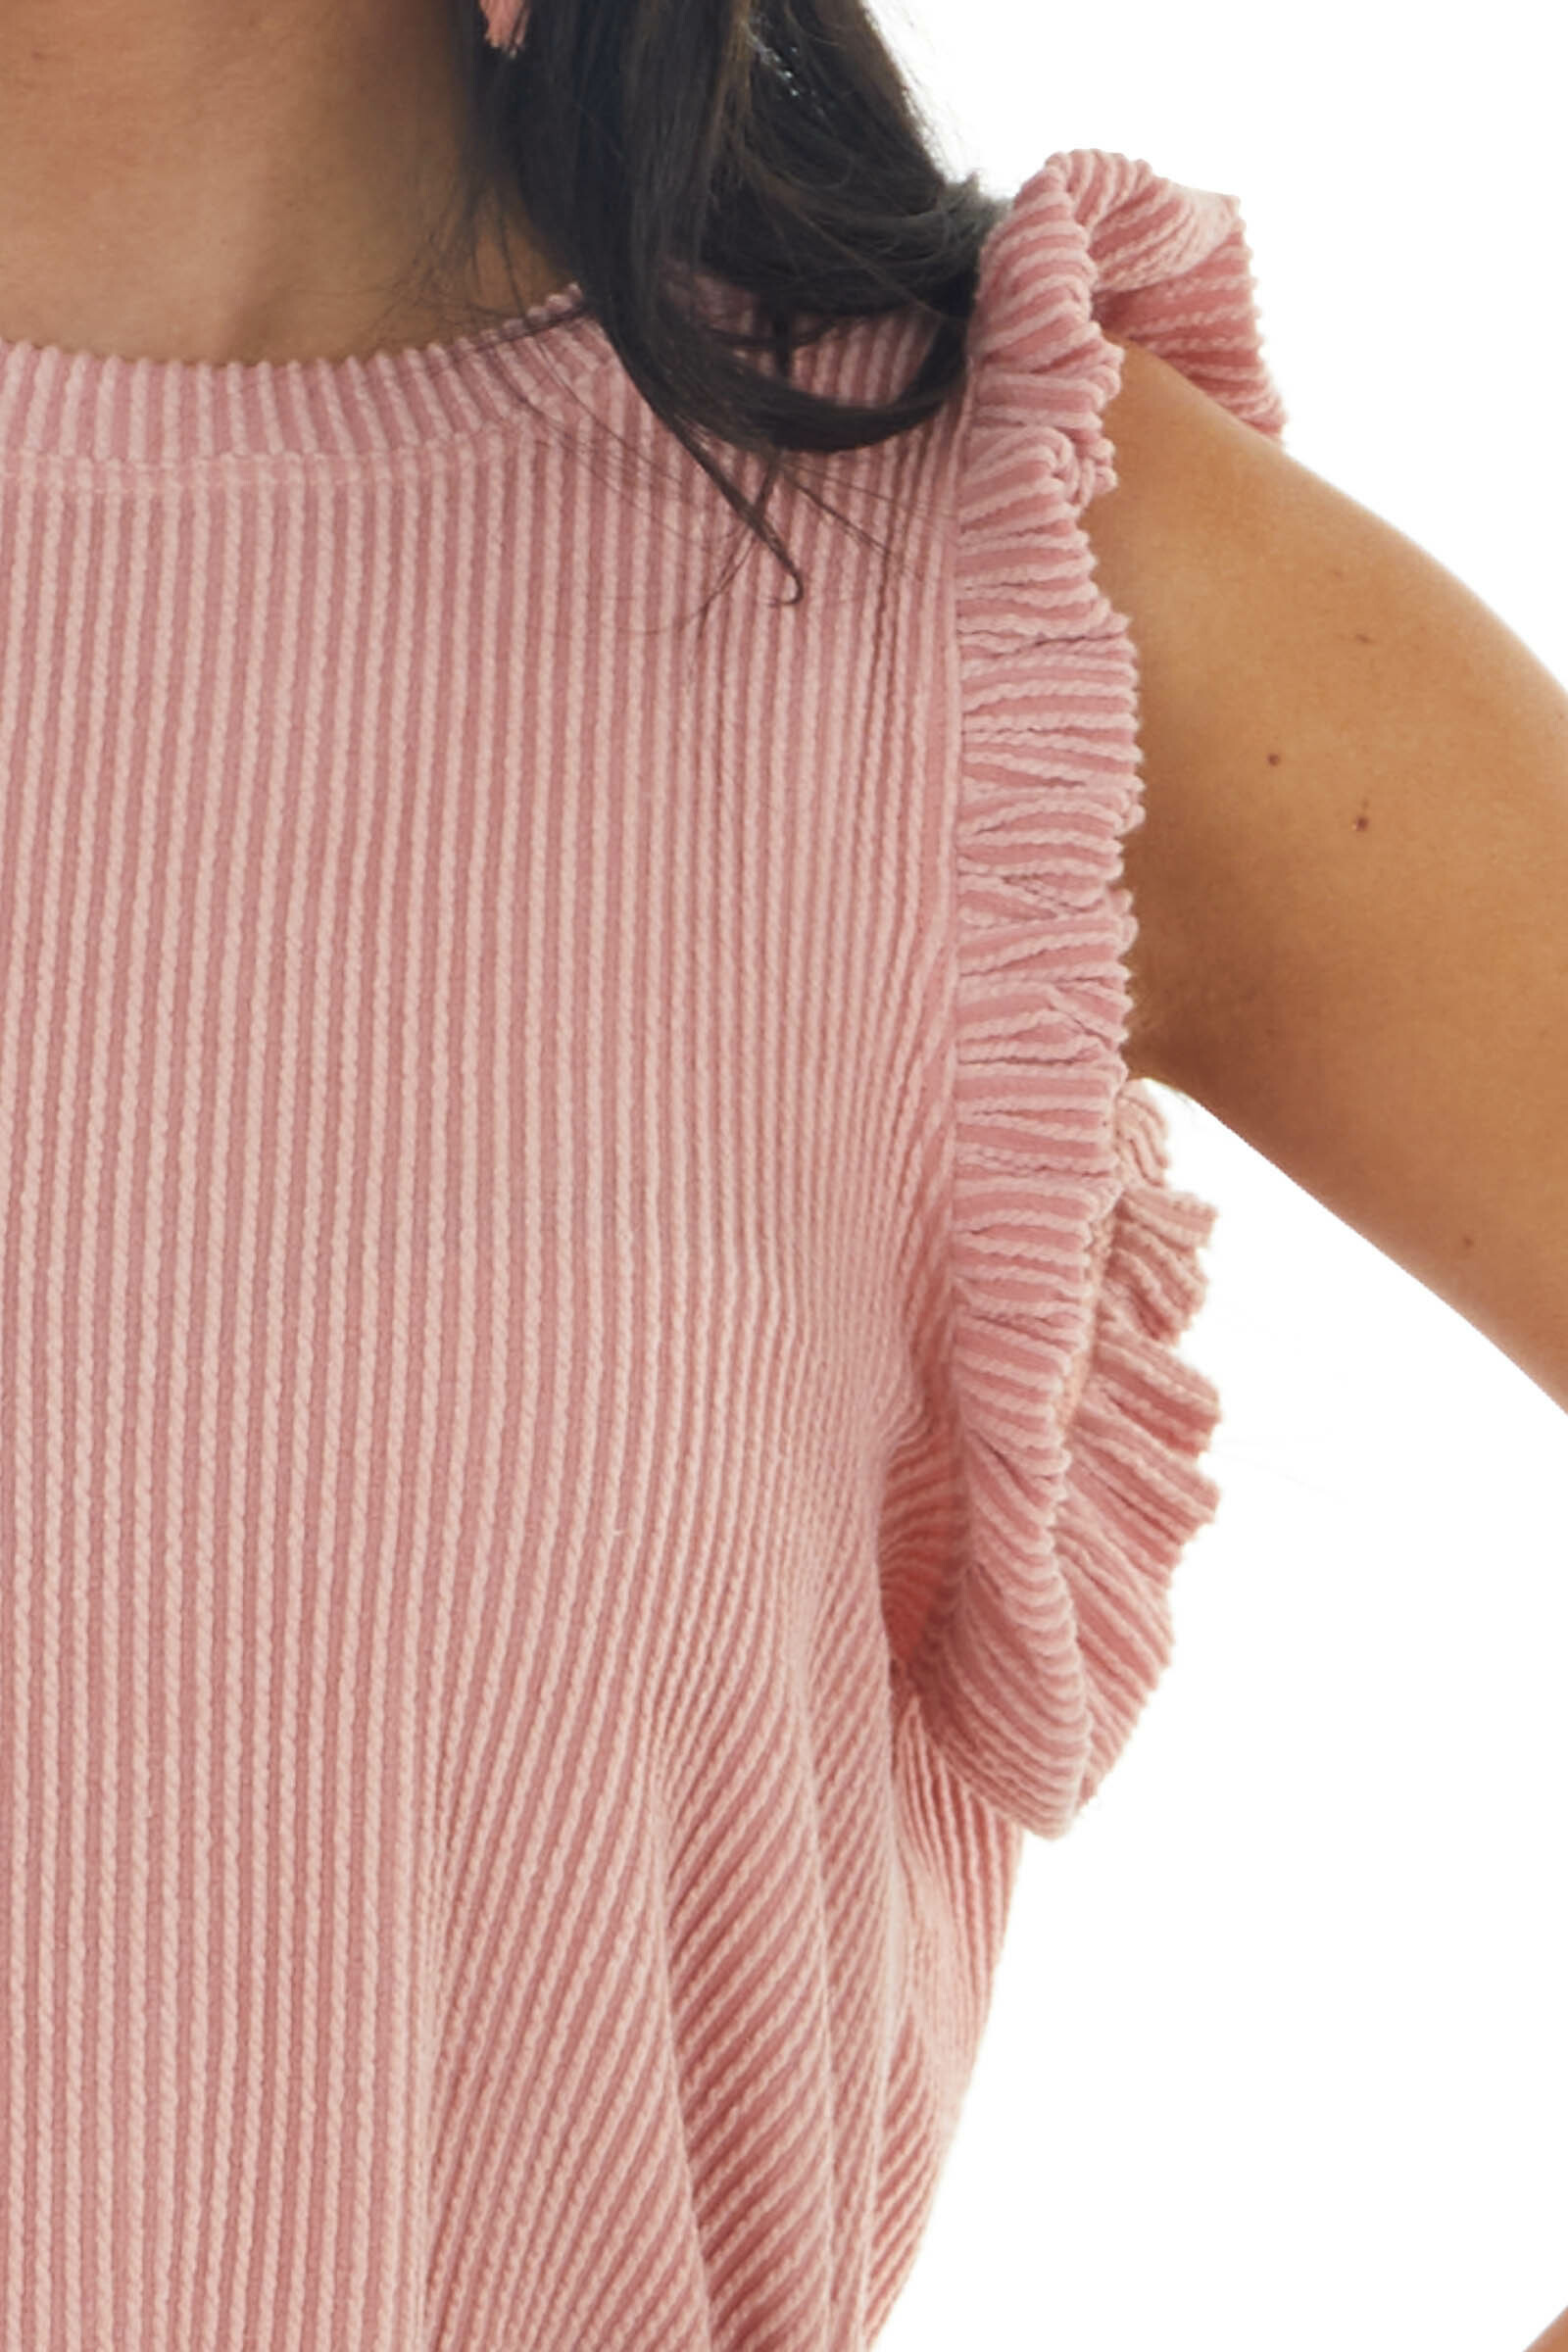 Vintage Punch Sleeveless Ribbed Knit Top with Ruffles